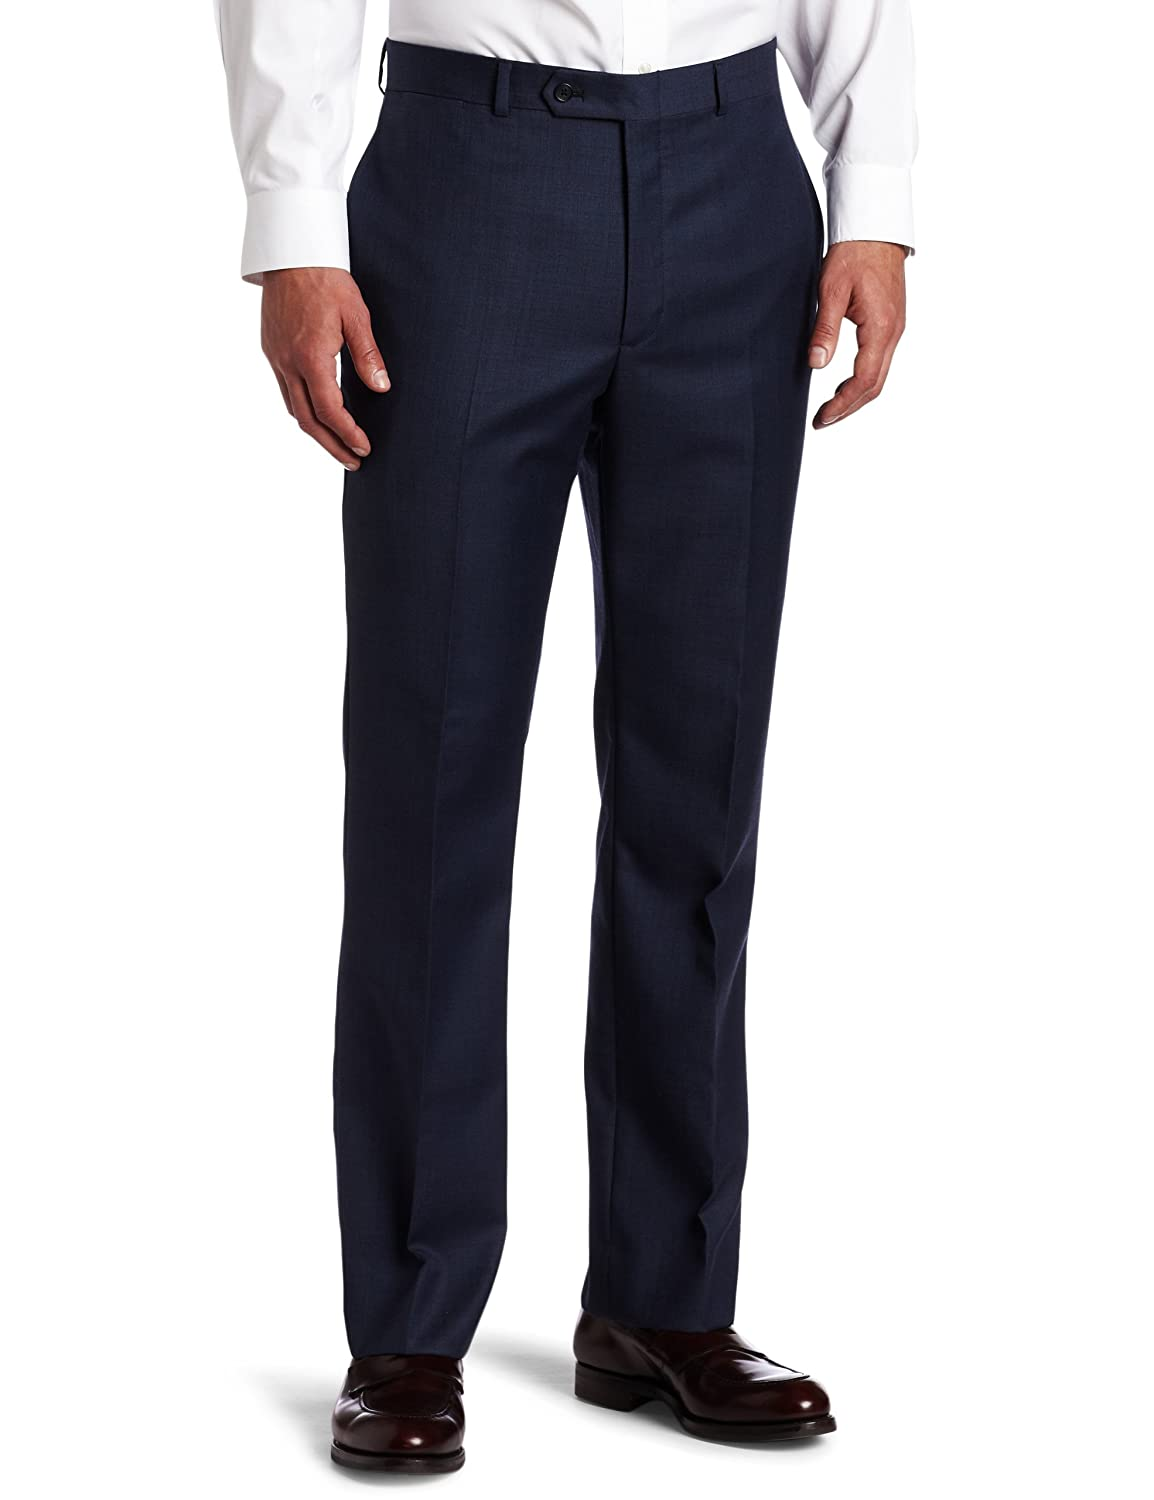 Tommy Hilfiger Mens Flat-Front Trim-Fit Pant